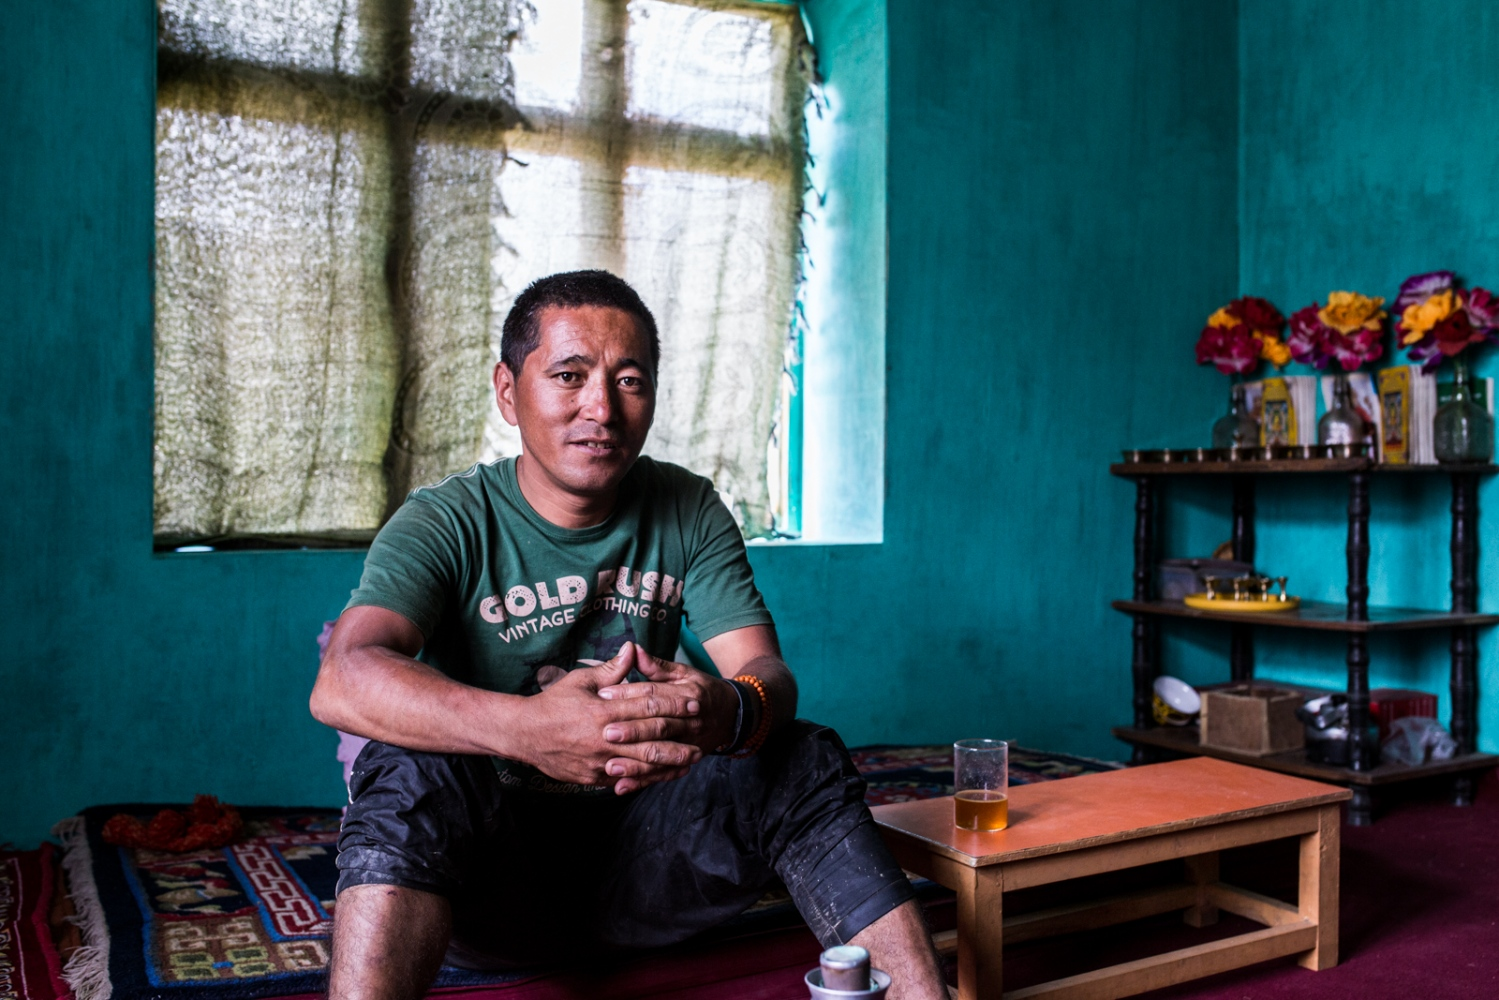 Bonchowk Chezen sits inside his new home in Lower Kumik. He is one of the lucky members of the new community. He has steady work in the Indian military and is able to provide for his family.